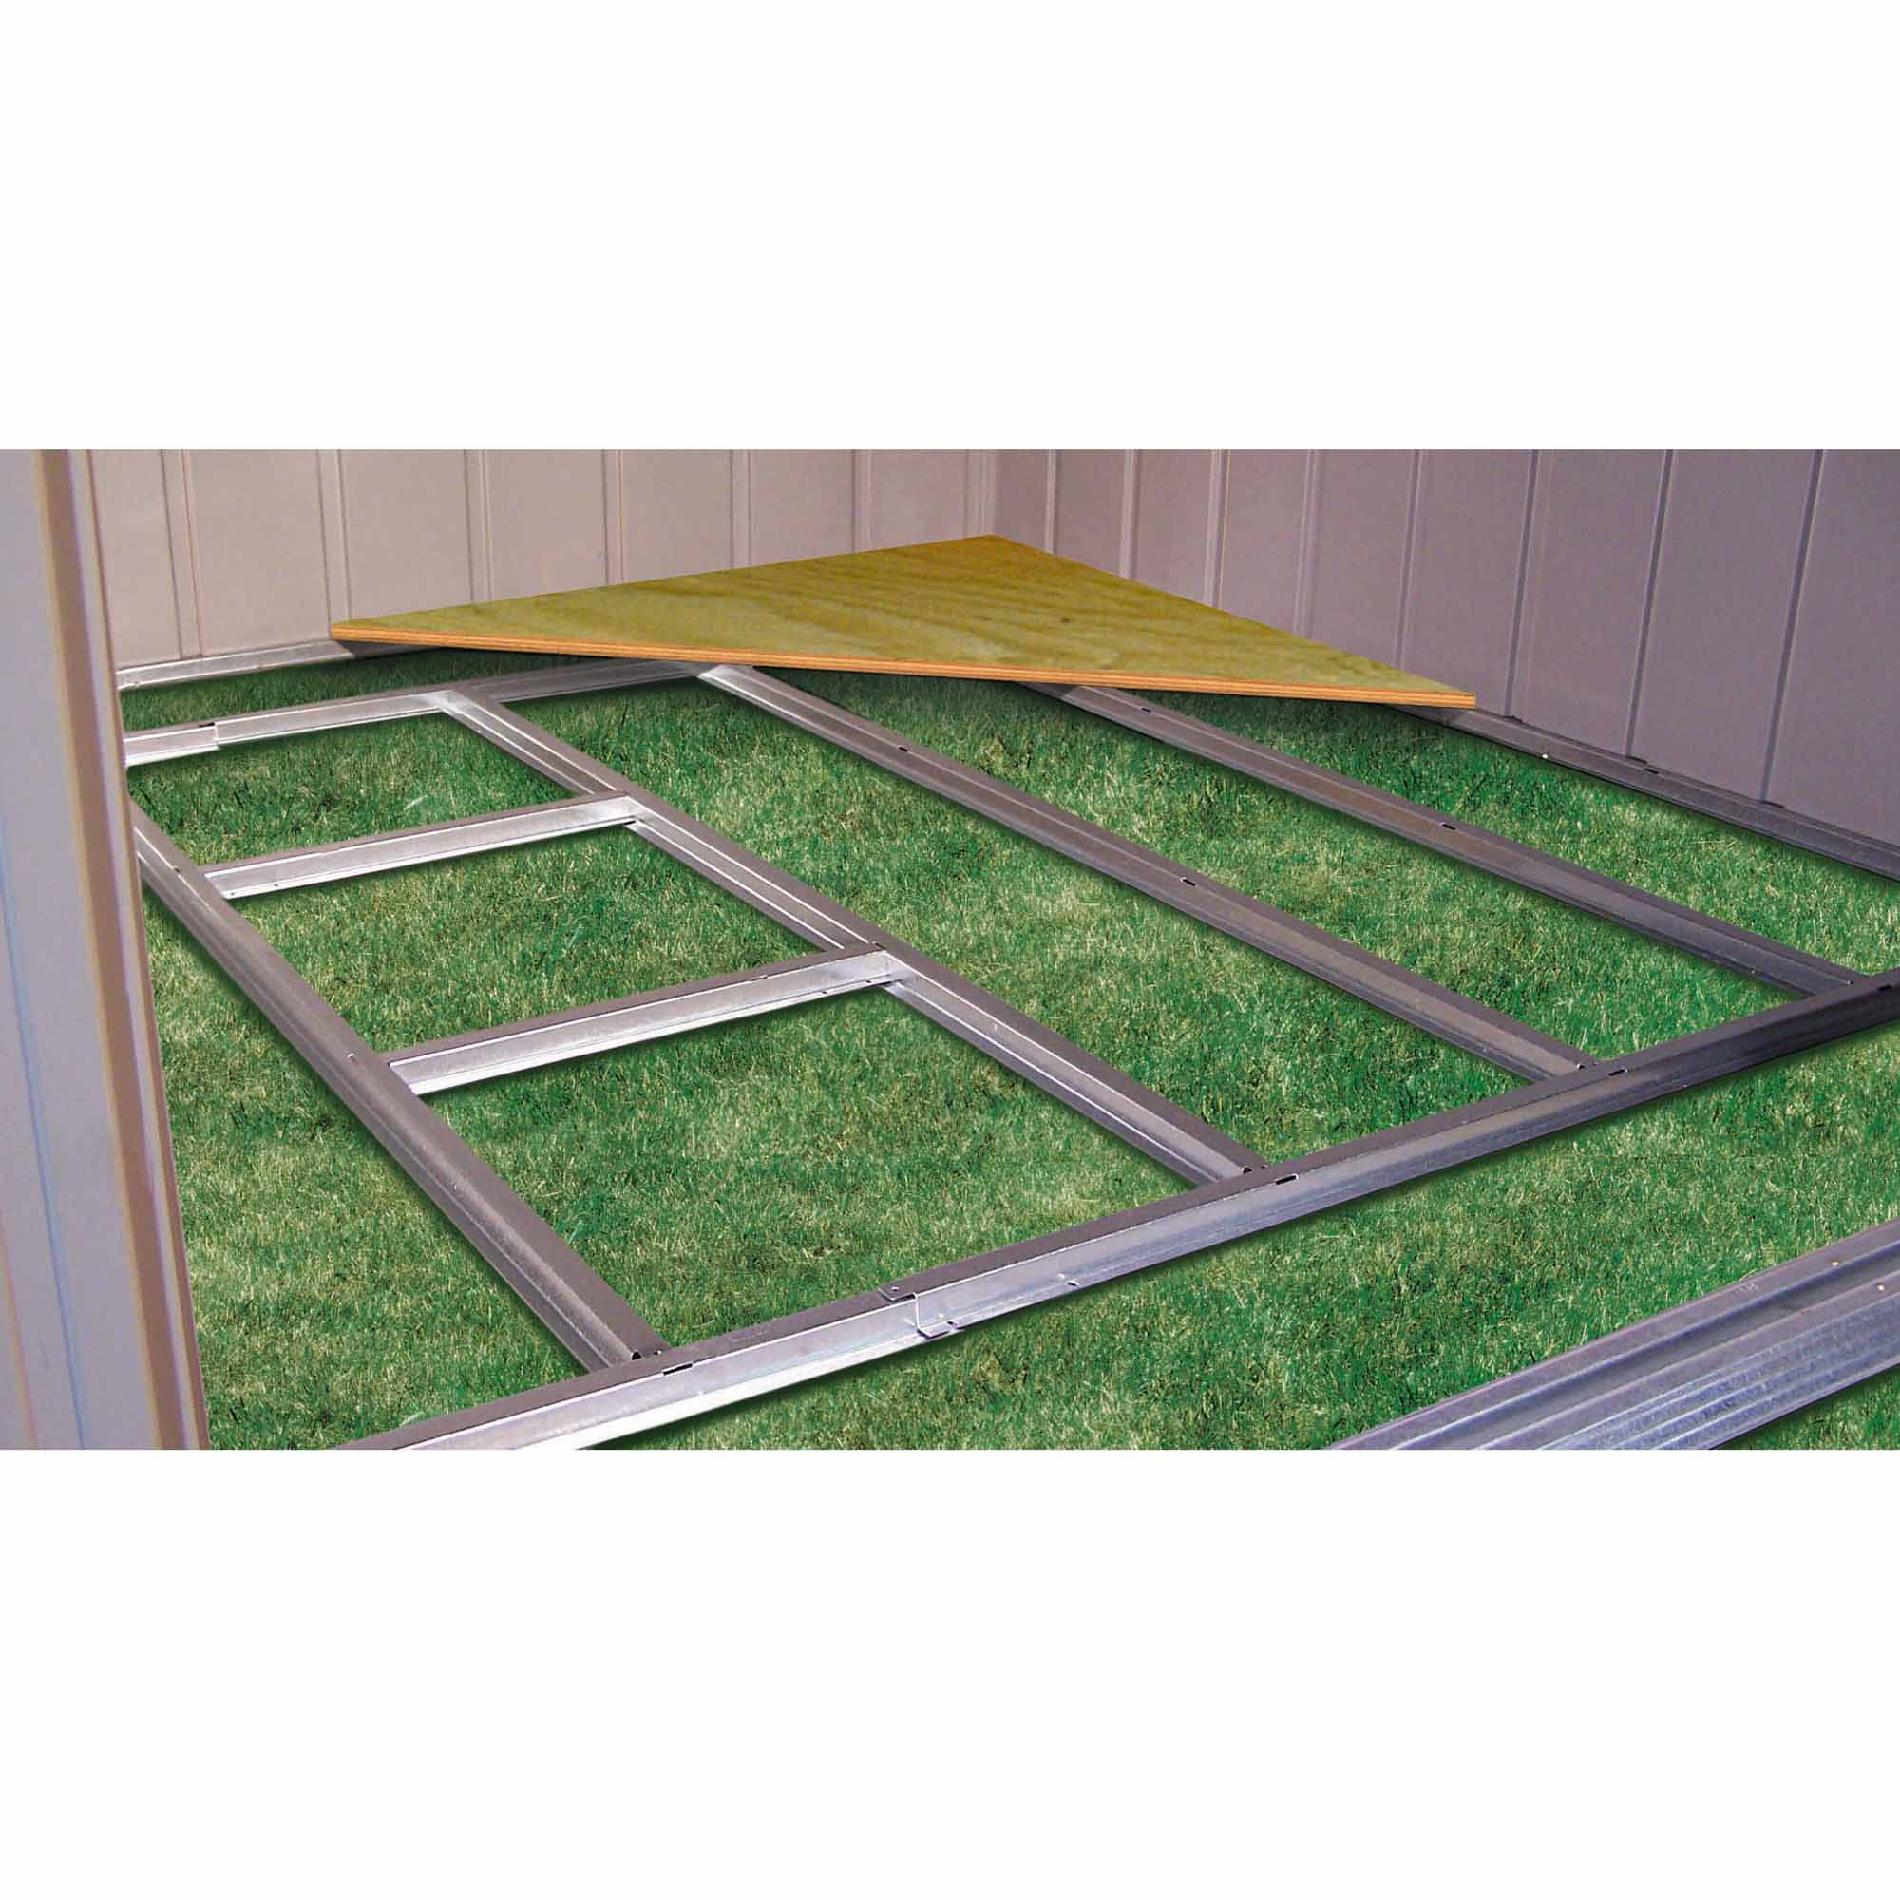 10-ft. x 7-ft. Shed Floor Frame Kit - FBS109